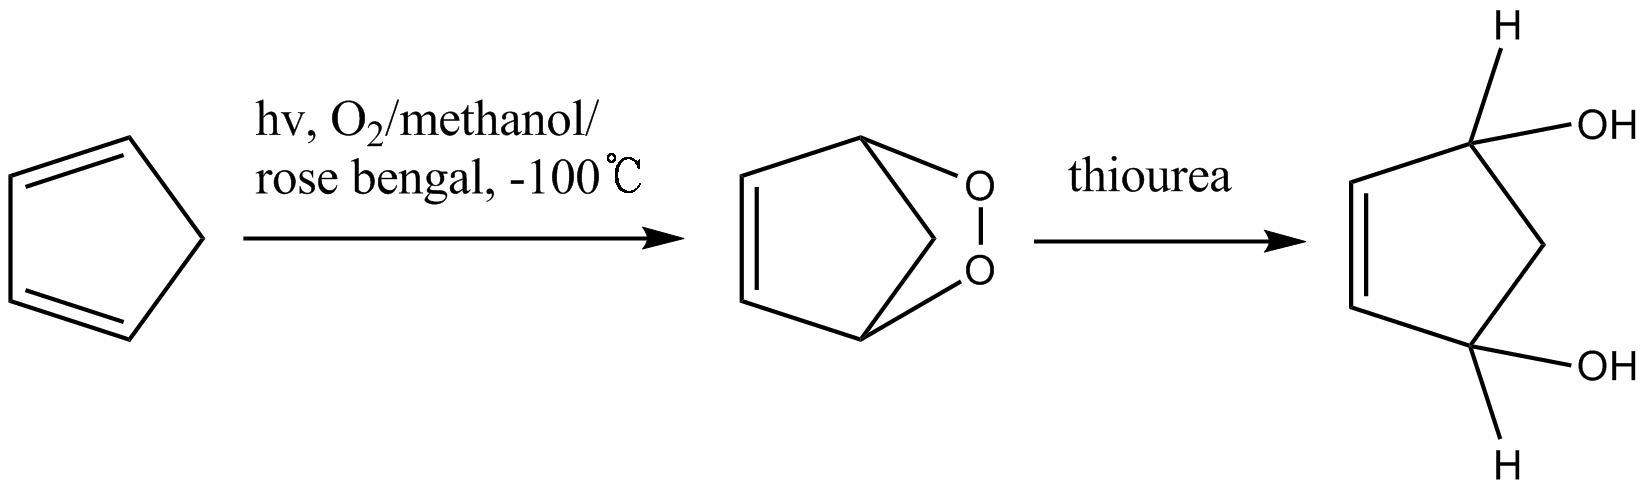 reduction of cyclic peroxide